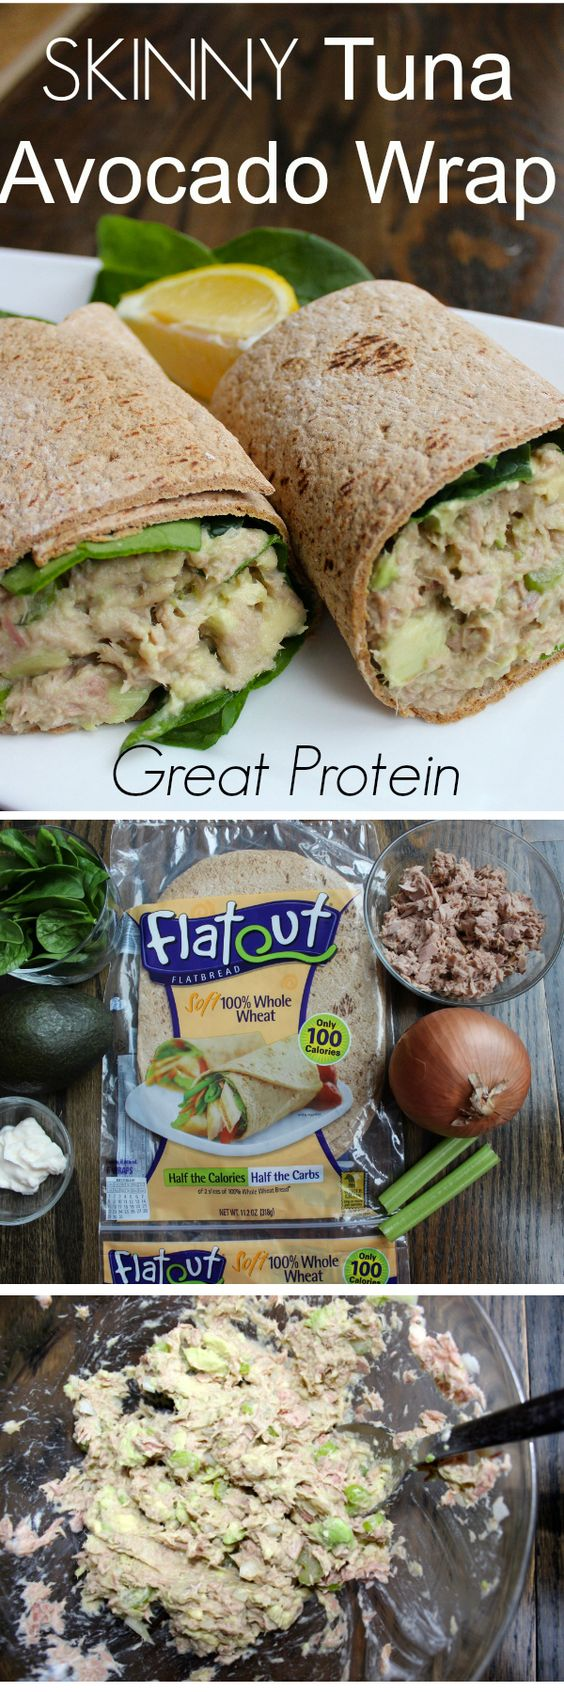 make it tuna wrap avocado chicken recipe super simple yogurt tuna ...